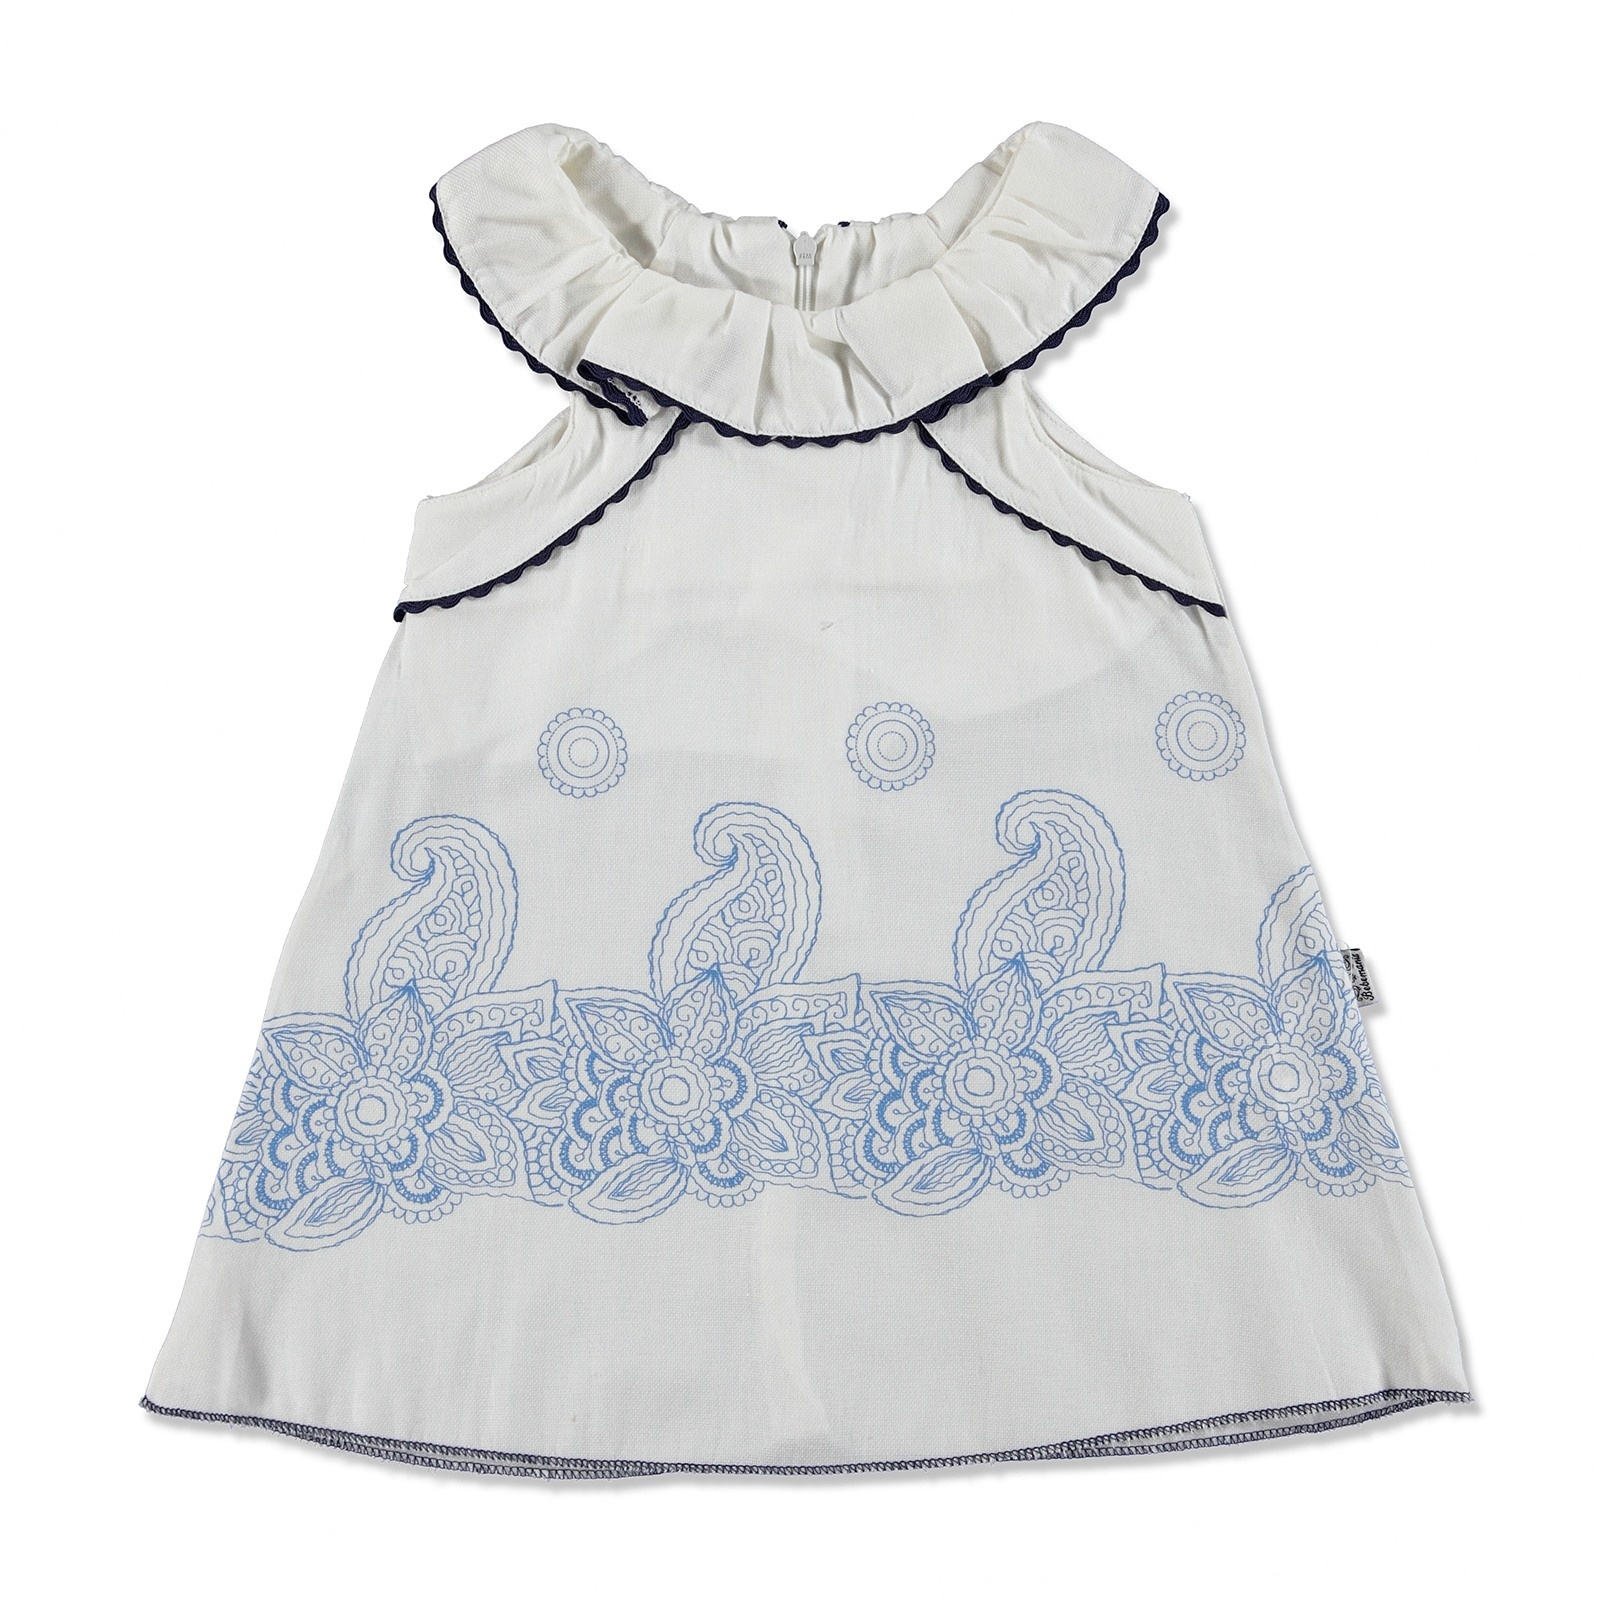 Ebebek Bebemania Summer Baby Girl Poplin Ruffle Detailed Dress